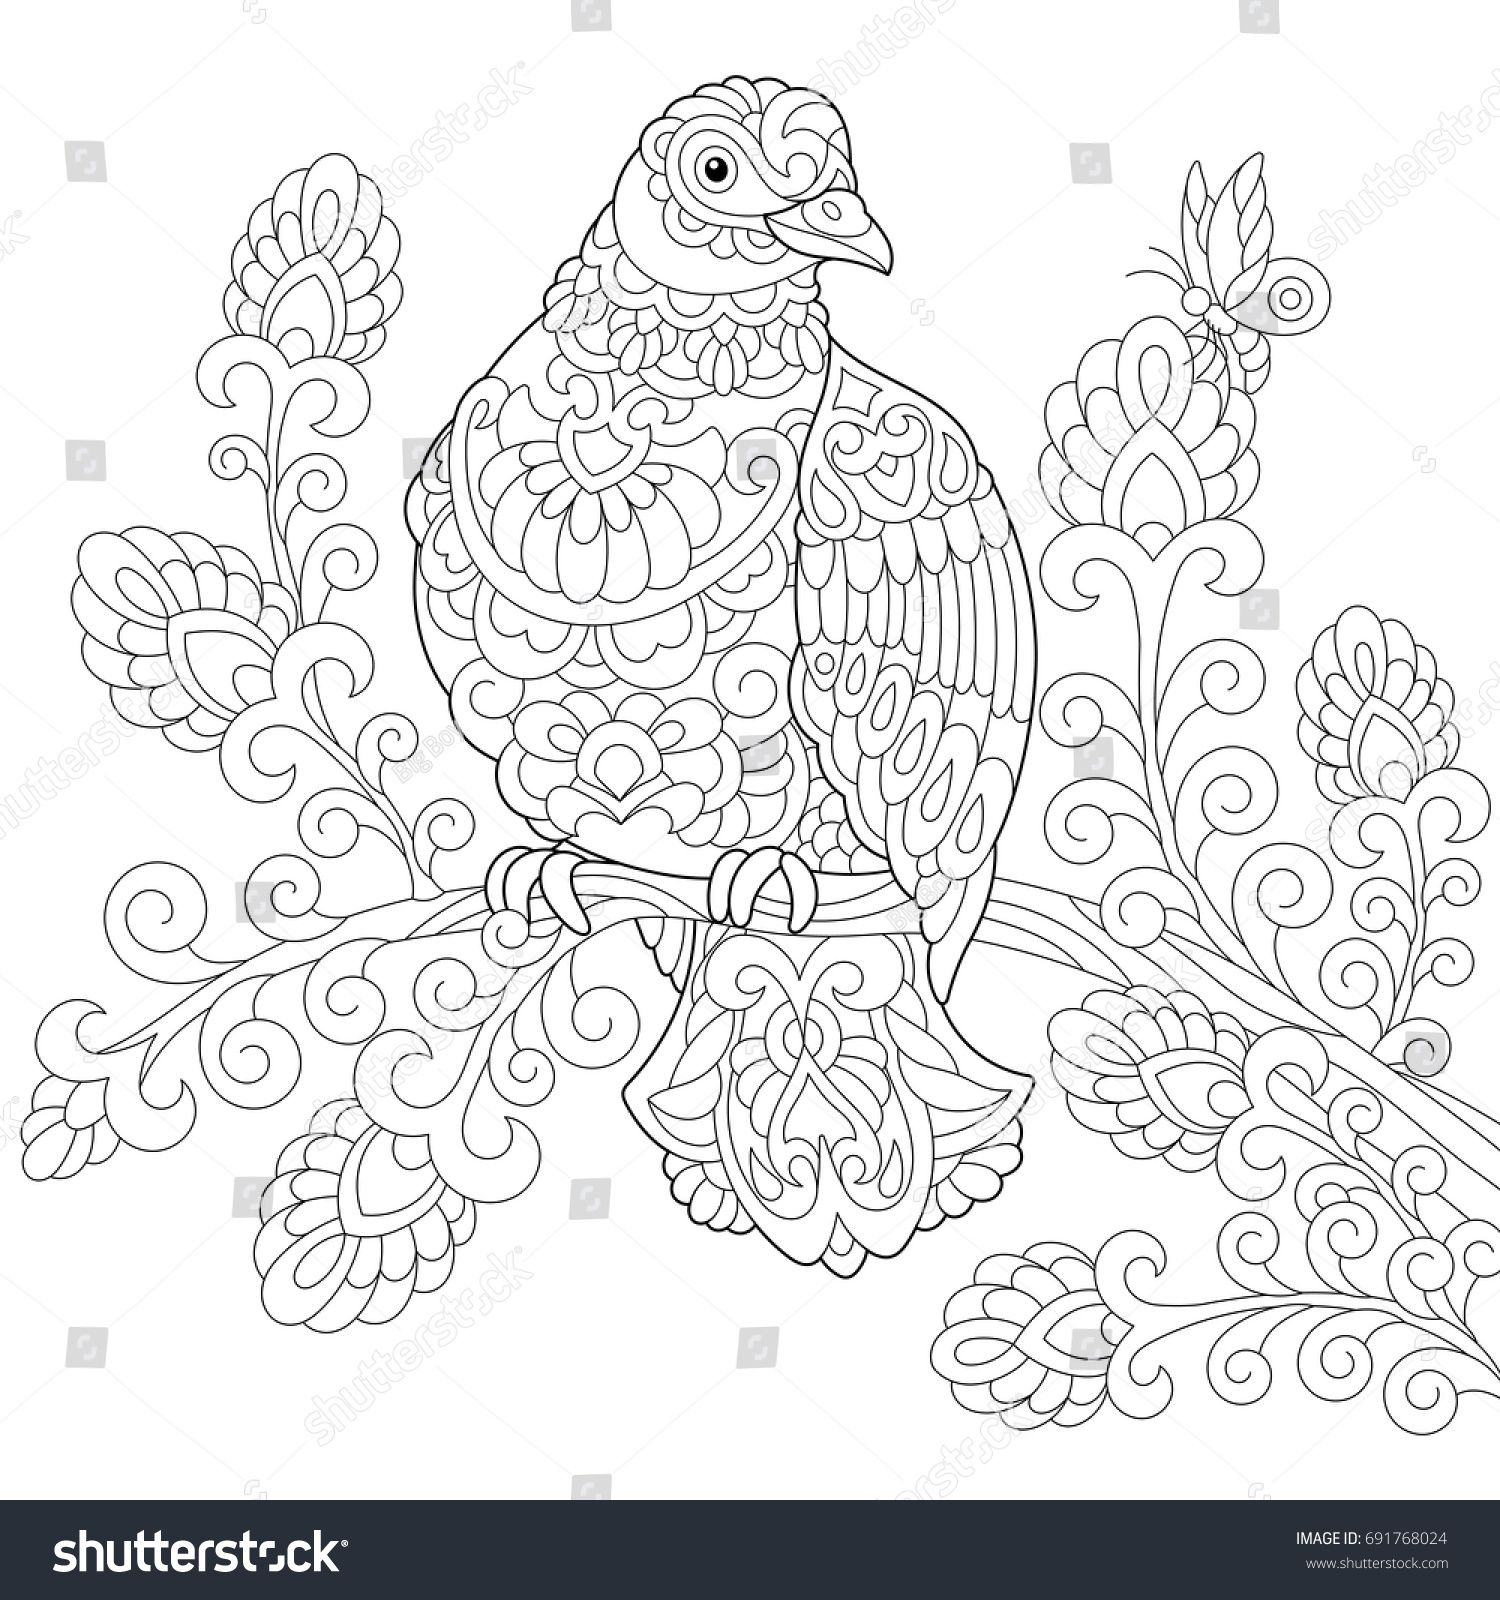 Coloring Page Of Dove Pigeon Bird Freehand Sketch Drawing For